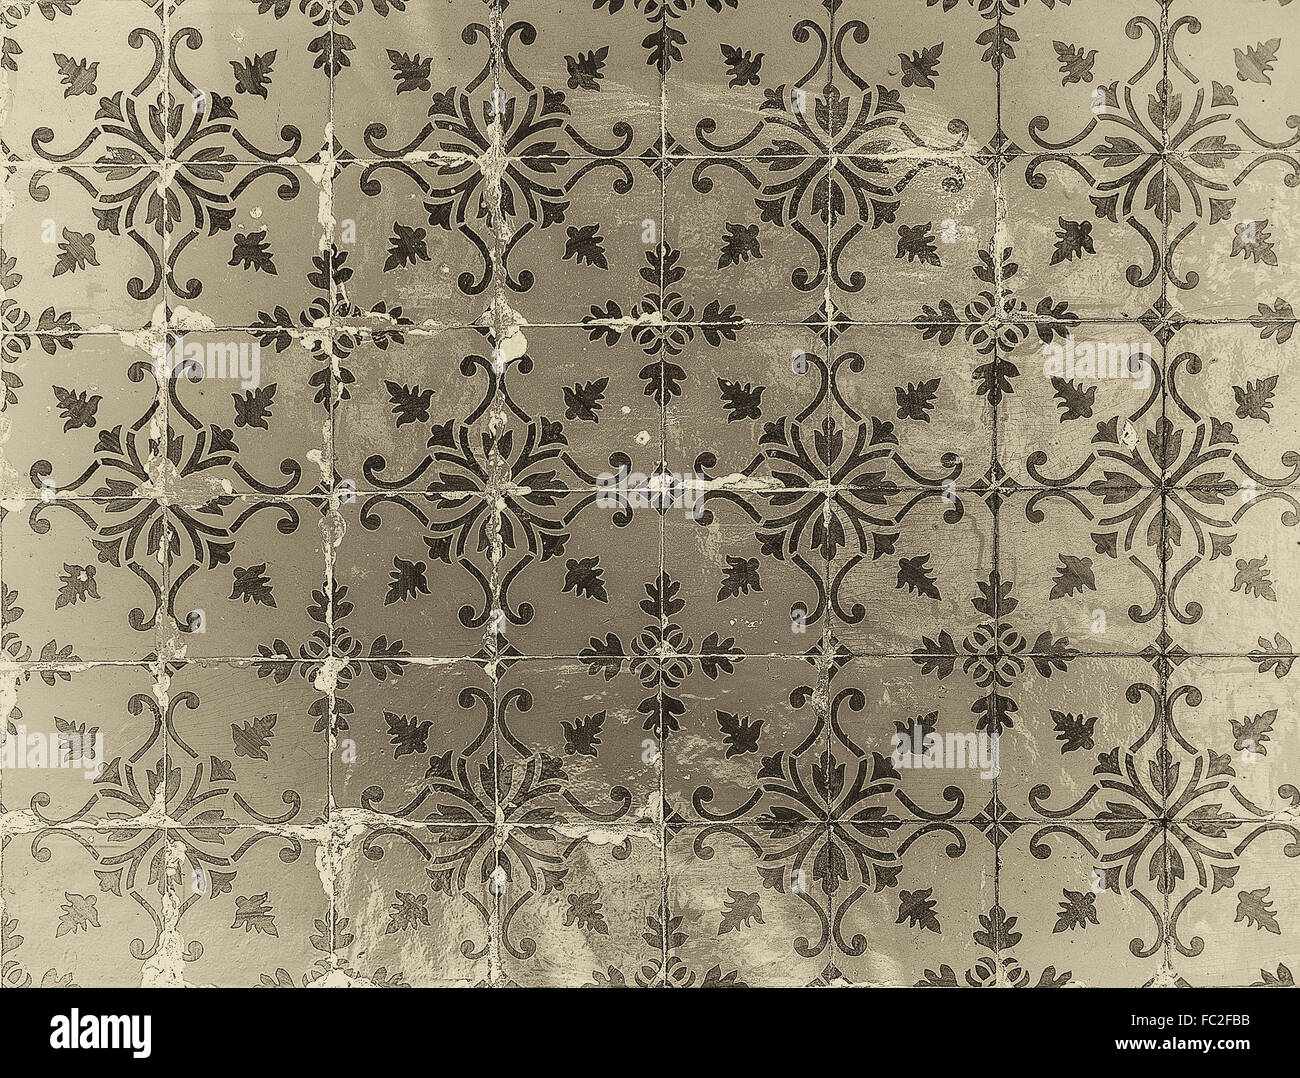 Vintage azulejos, traditional Portuguese tiles - Stock Image